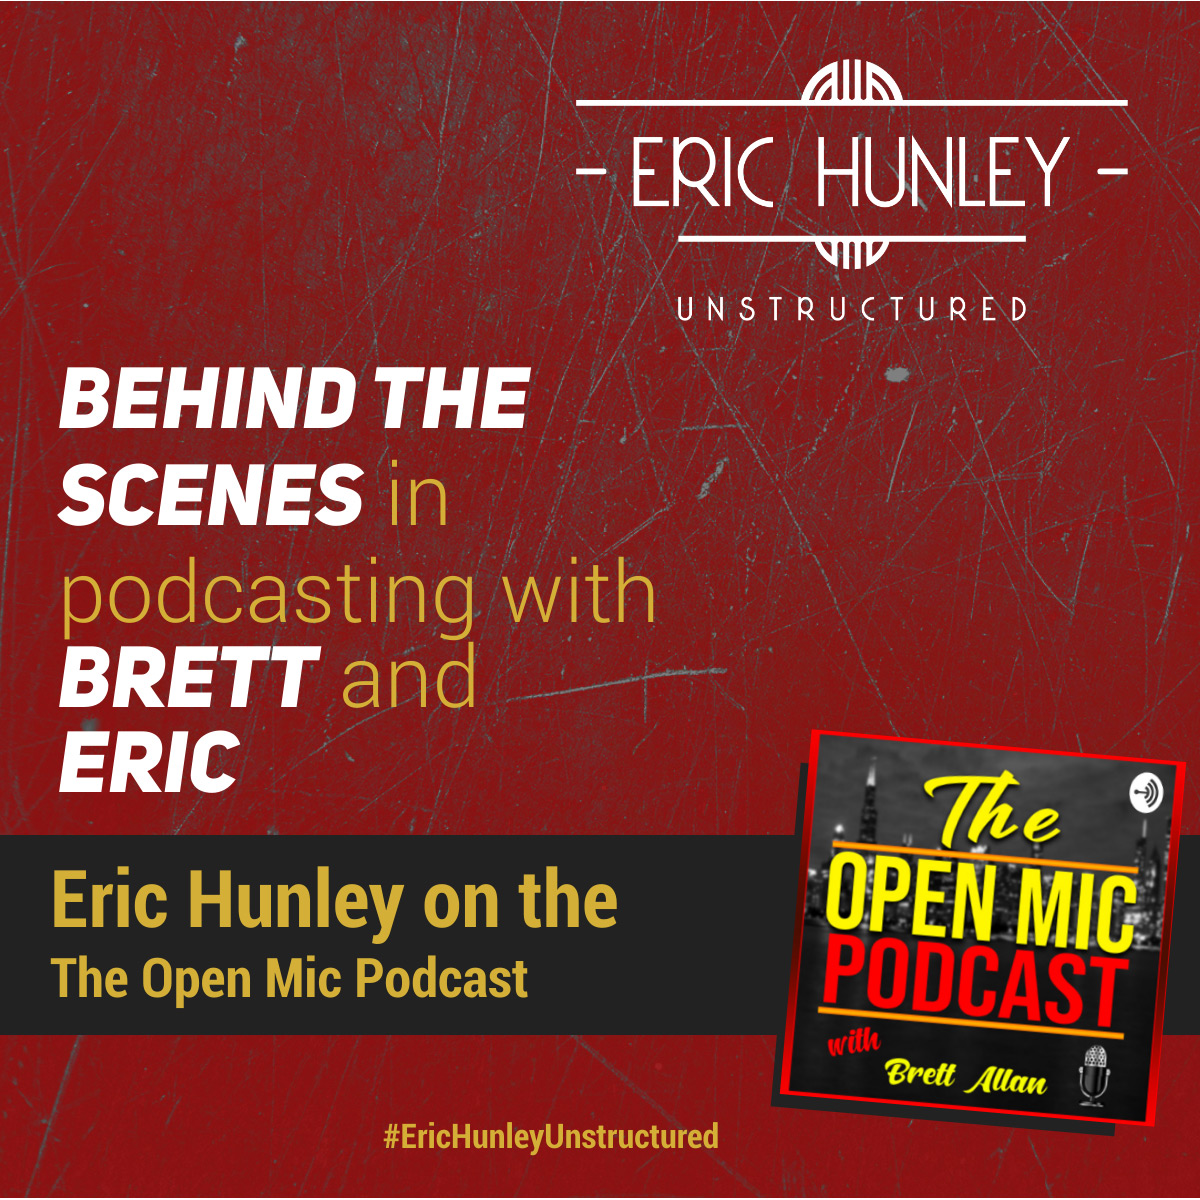 Eric Hunley Podcast Appearance Interviews - The Open Mic Podcast Podcast Square Post